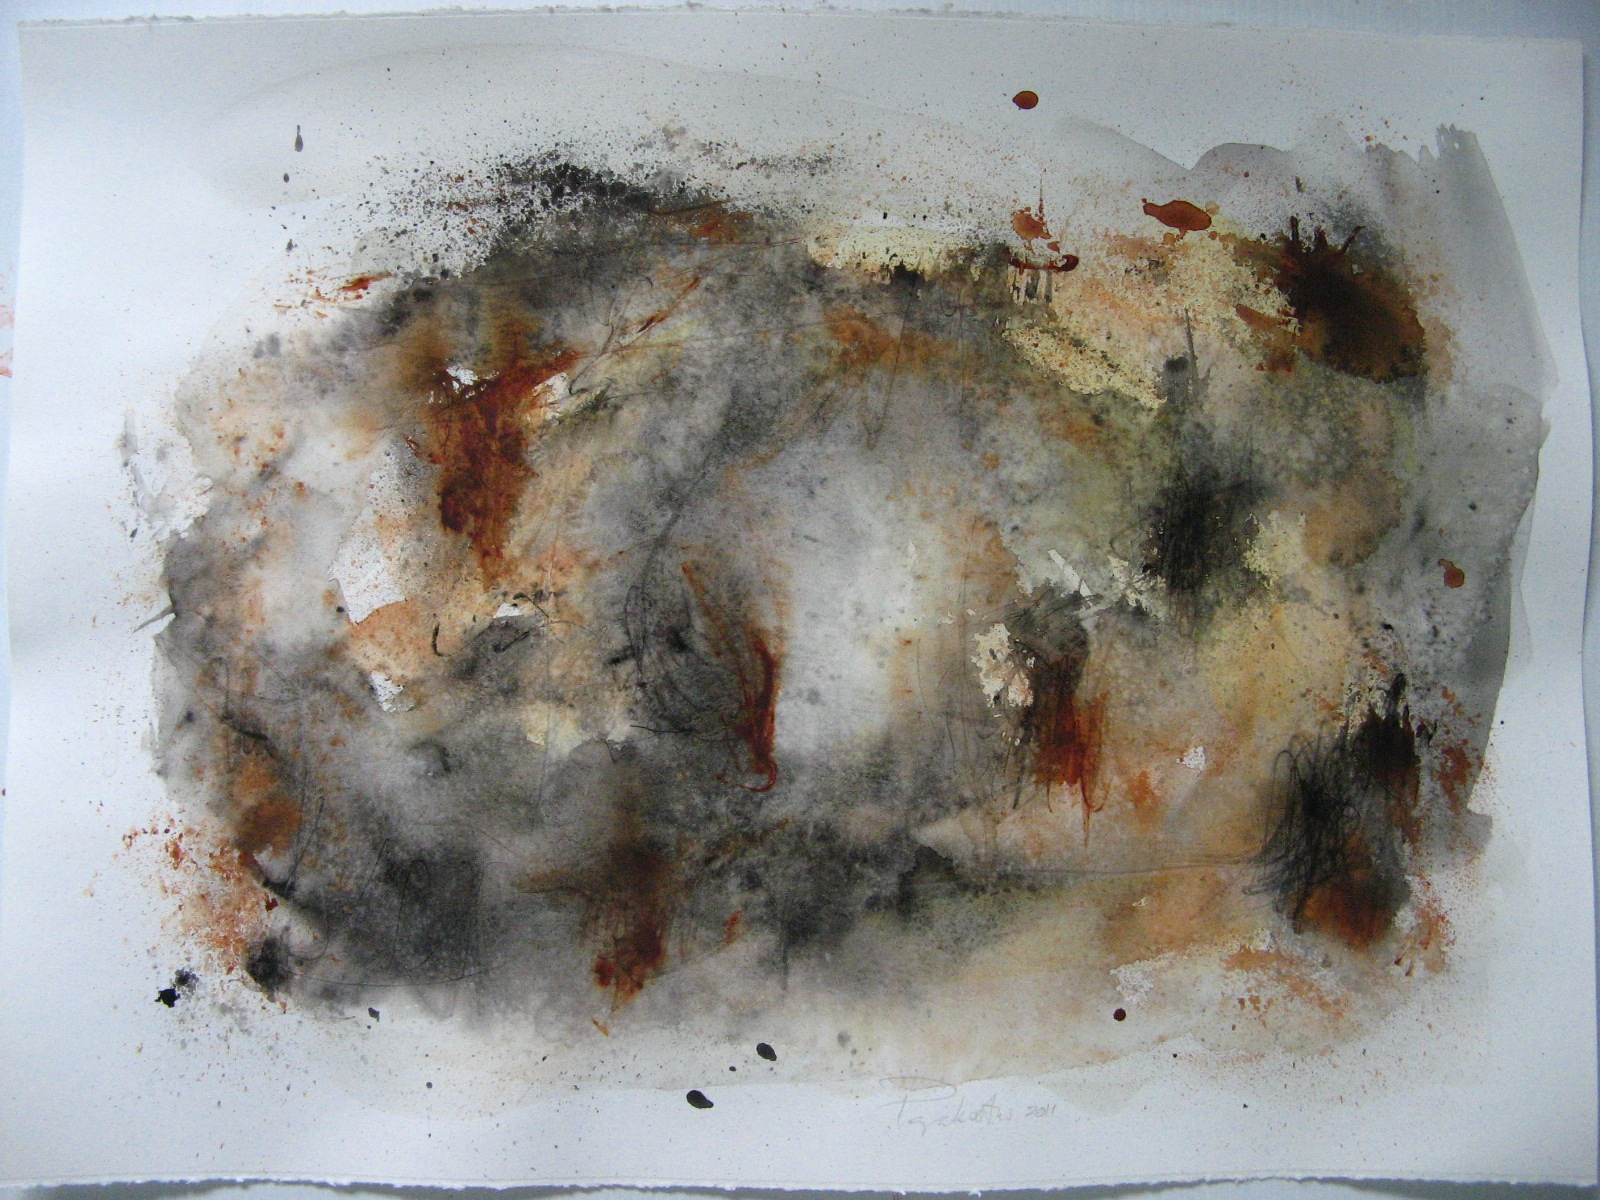 2011, mixed media on paper, 55.88 x 76.20cm (22 x 30in.) IMG_1953.JPG